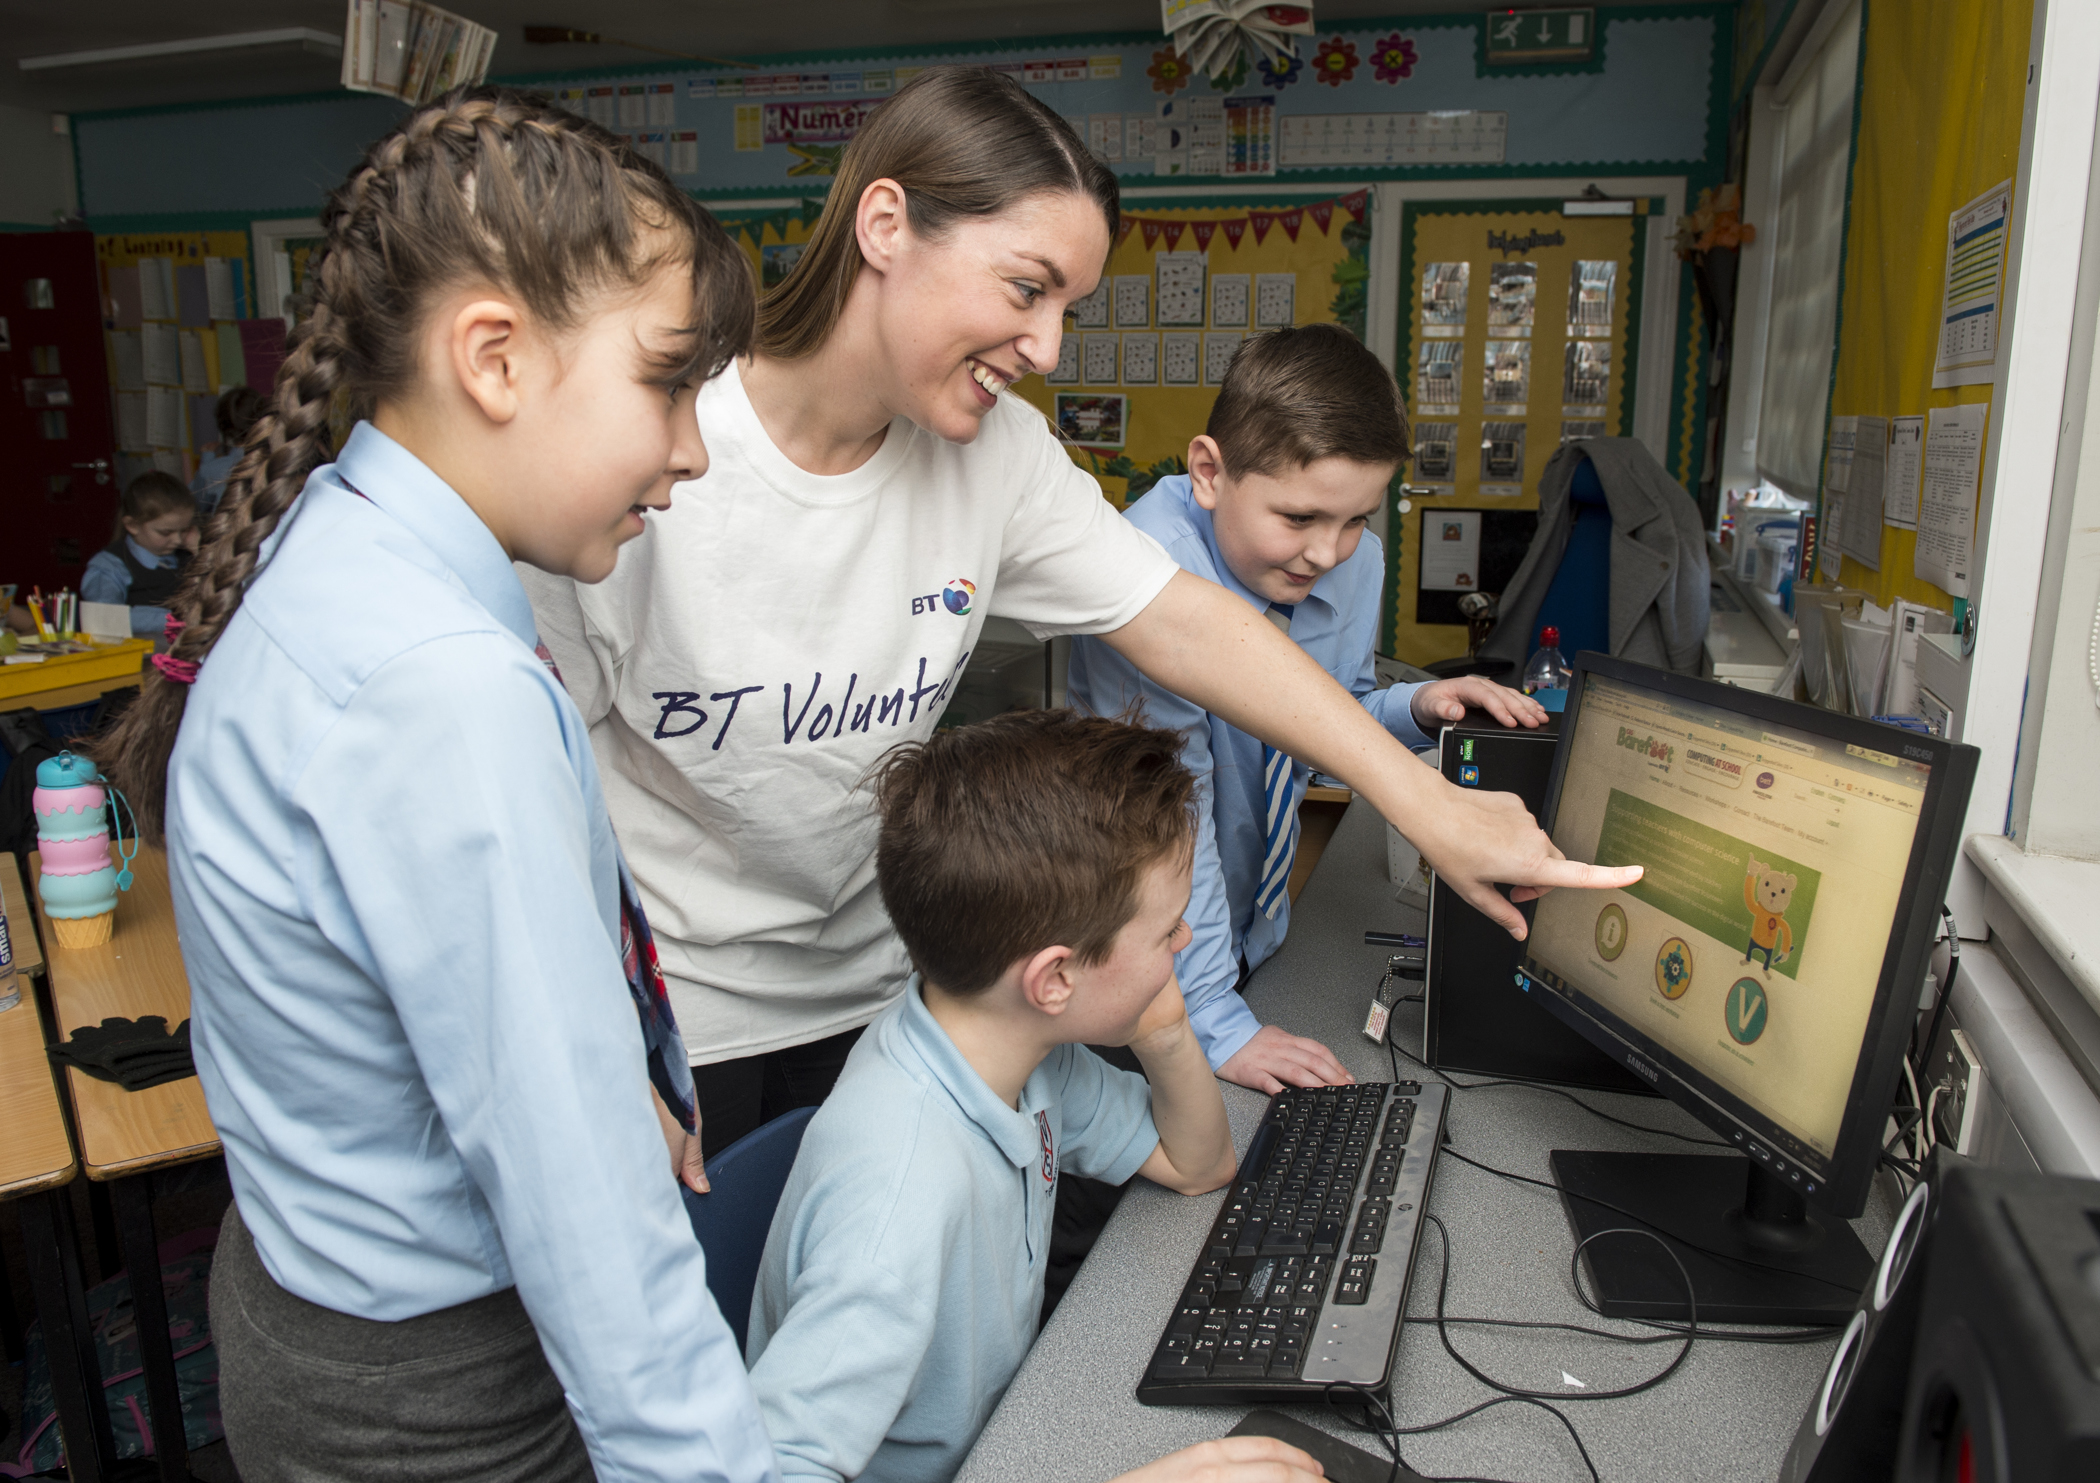 BT-sponsored Barefoot Computing provides boost for computing lessons in Scottish schools